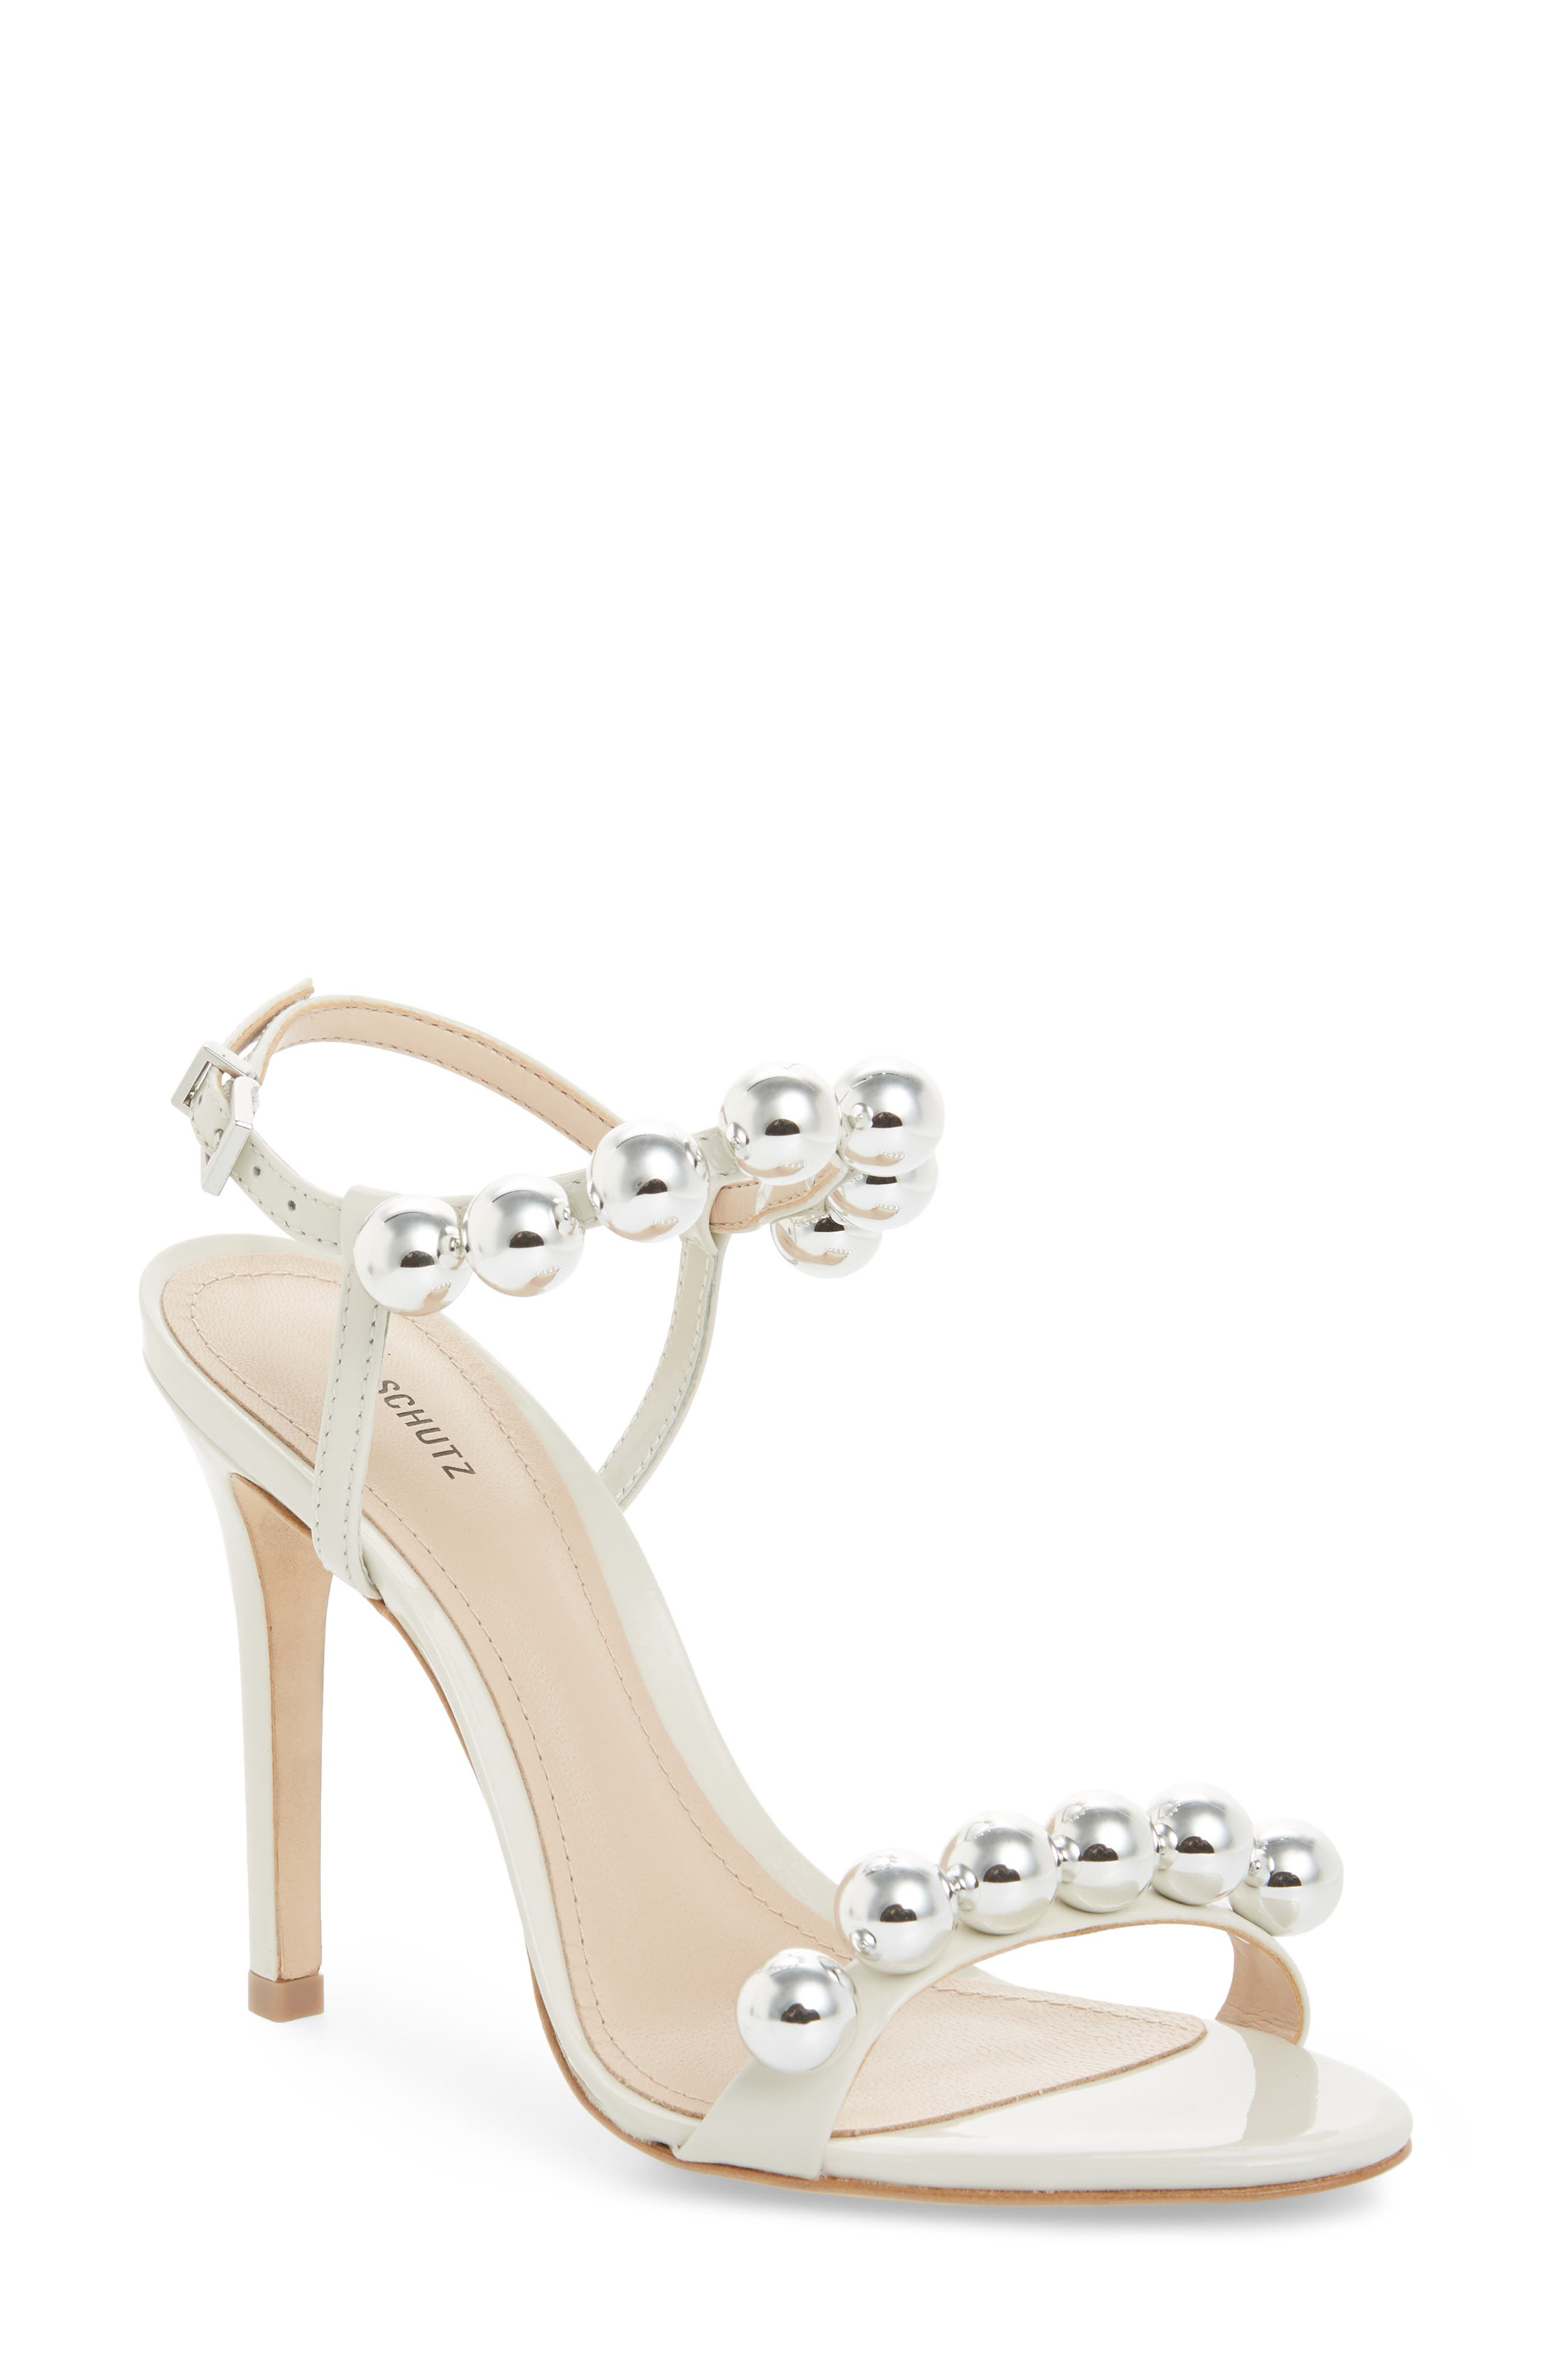 Nellie Sandal,                             Main thumbnail 1, color,                             PEARL LEATHER